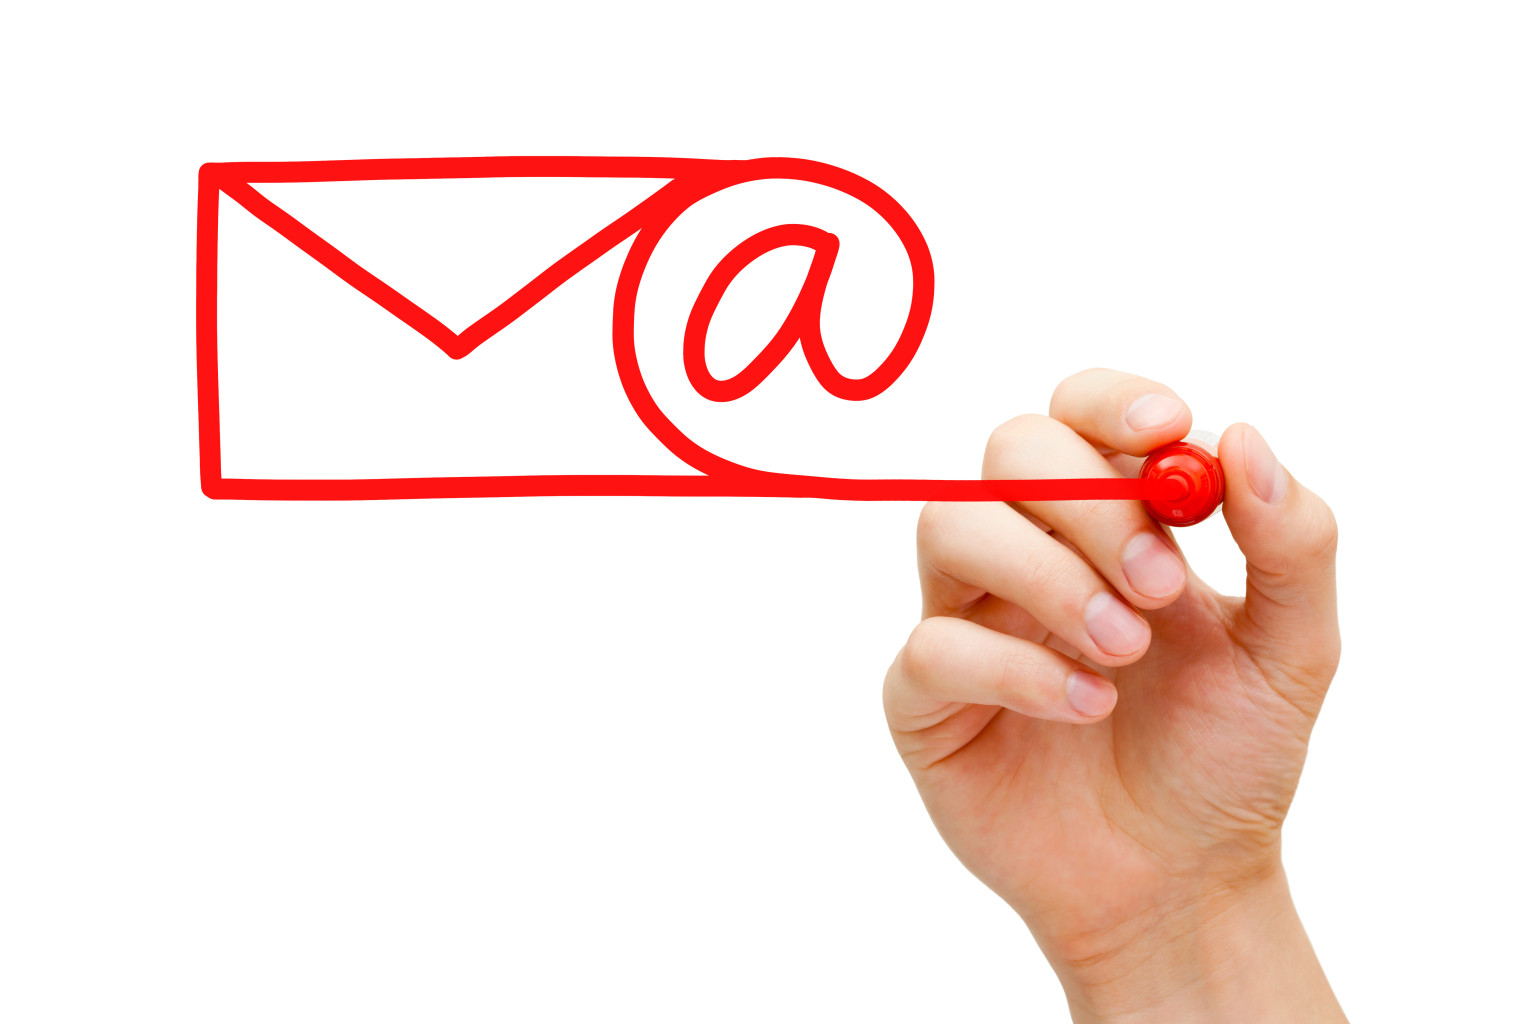 3 Easy Ways to Build an Email List For Your Small Business